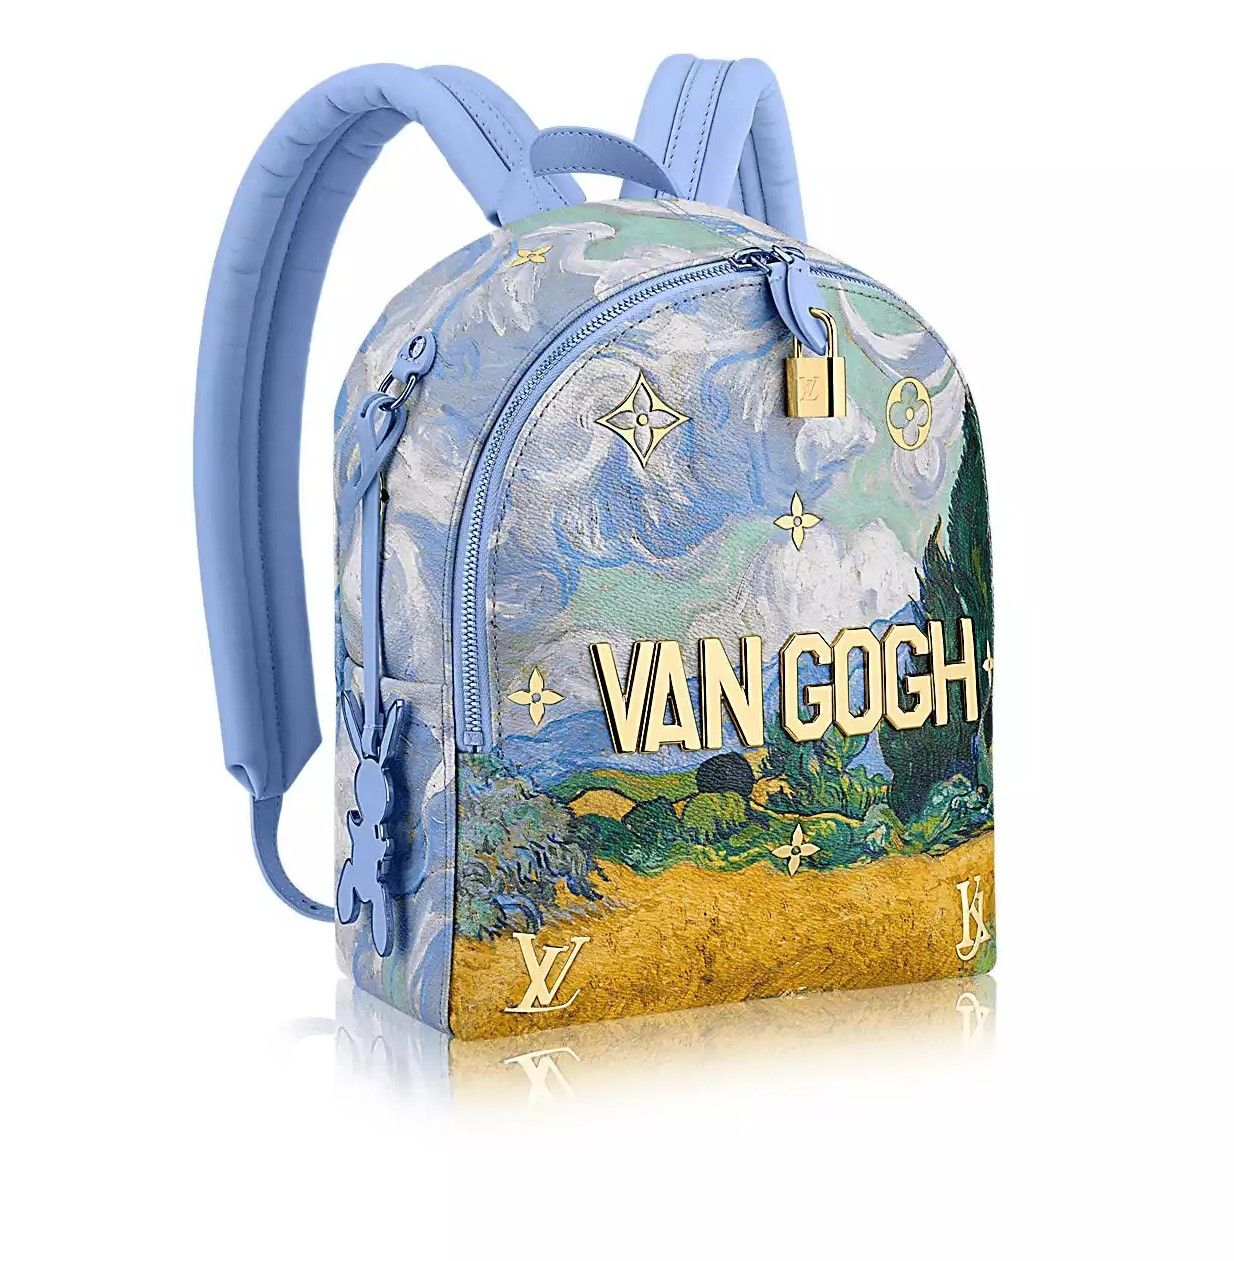 Louis Vuitton X Koons Van Gogh Backpack  95910c69ea1